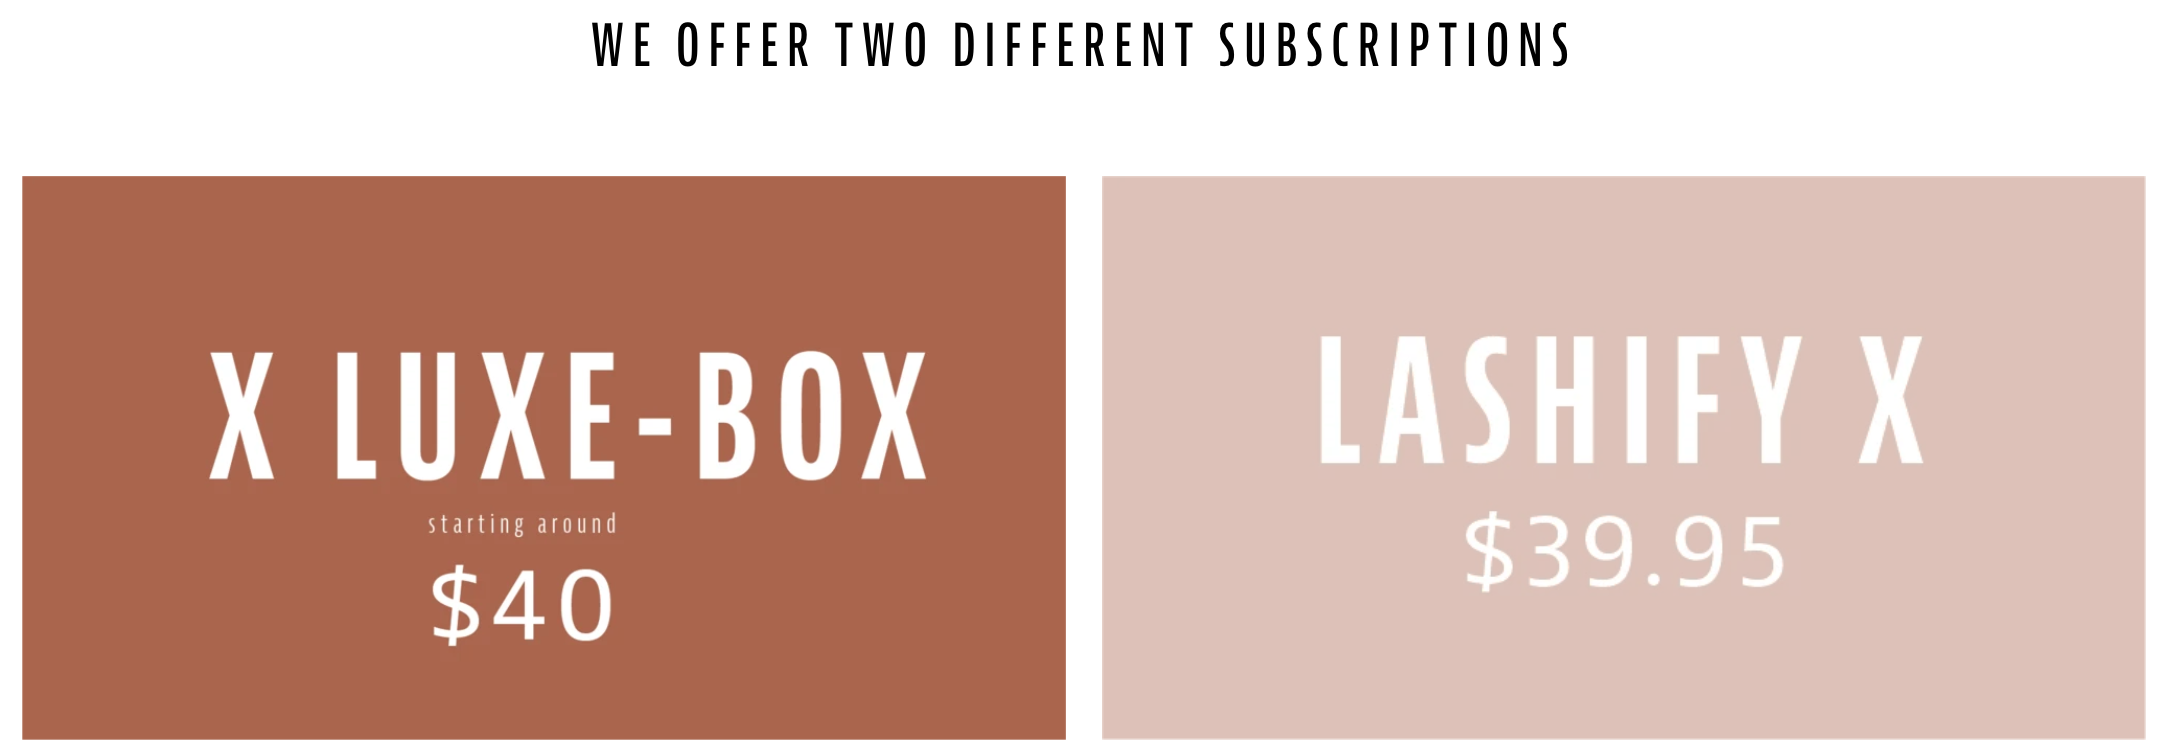 Brown banner showing two subscription options